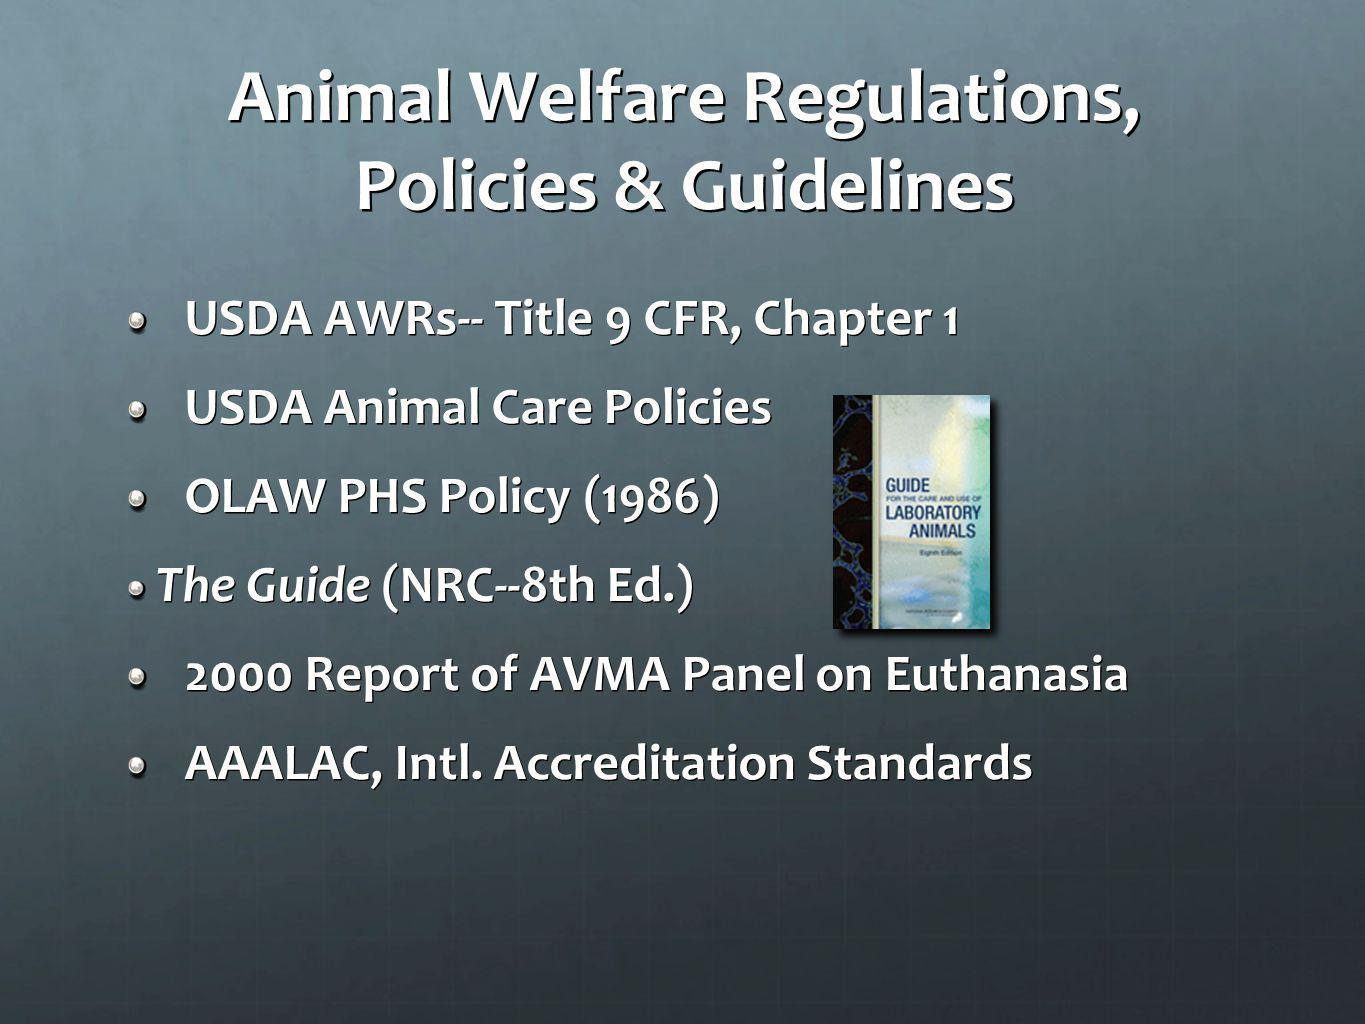 Animal Welfare Regulations, Policies & Guidelines